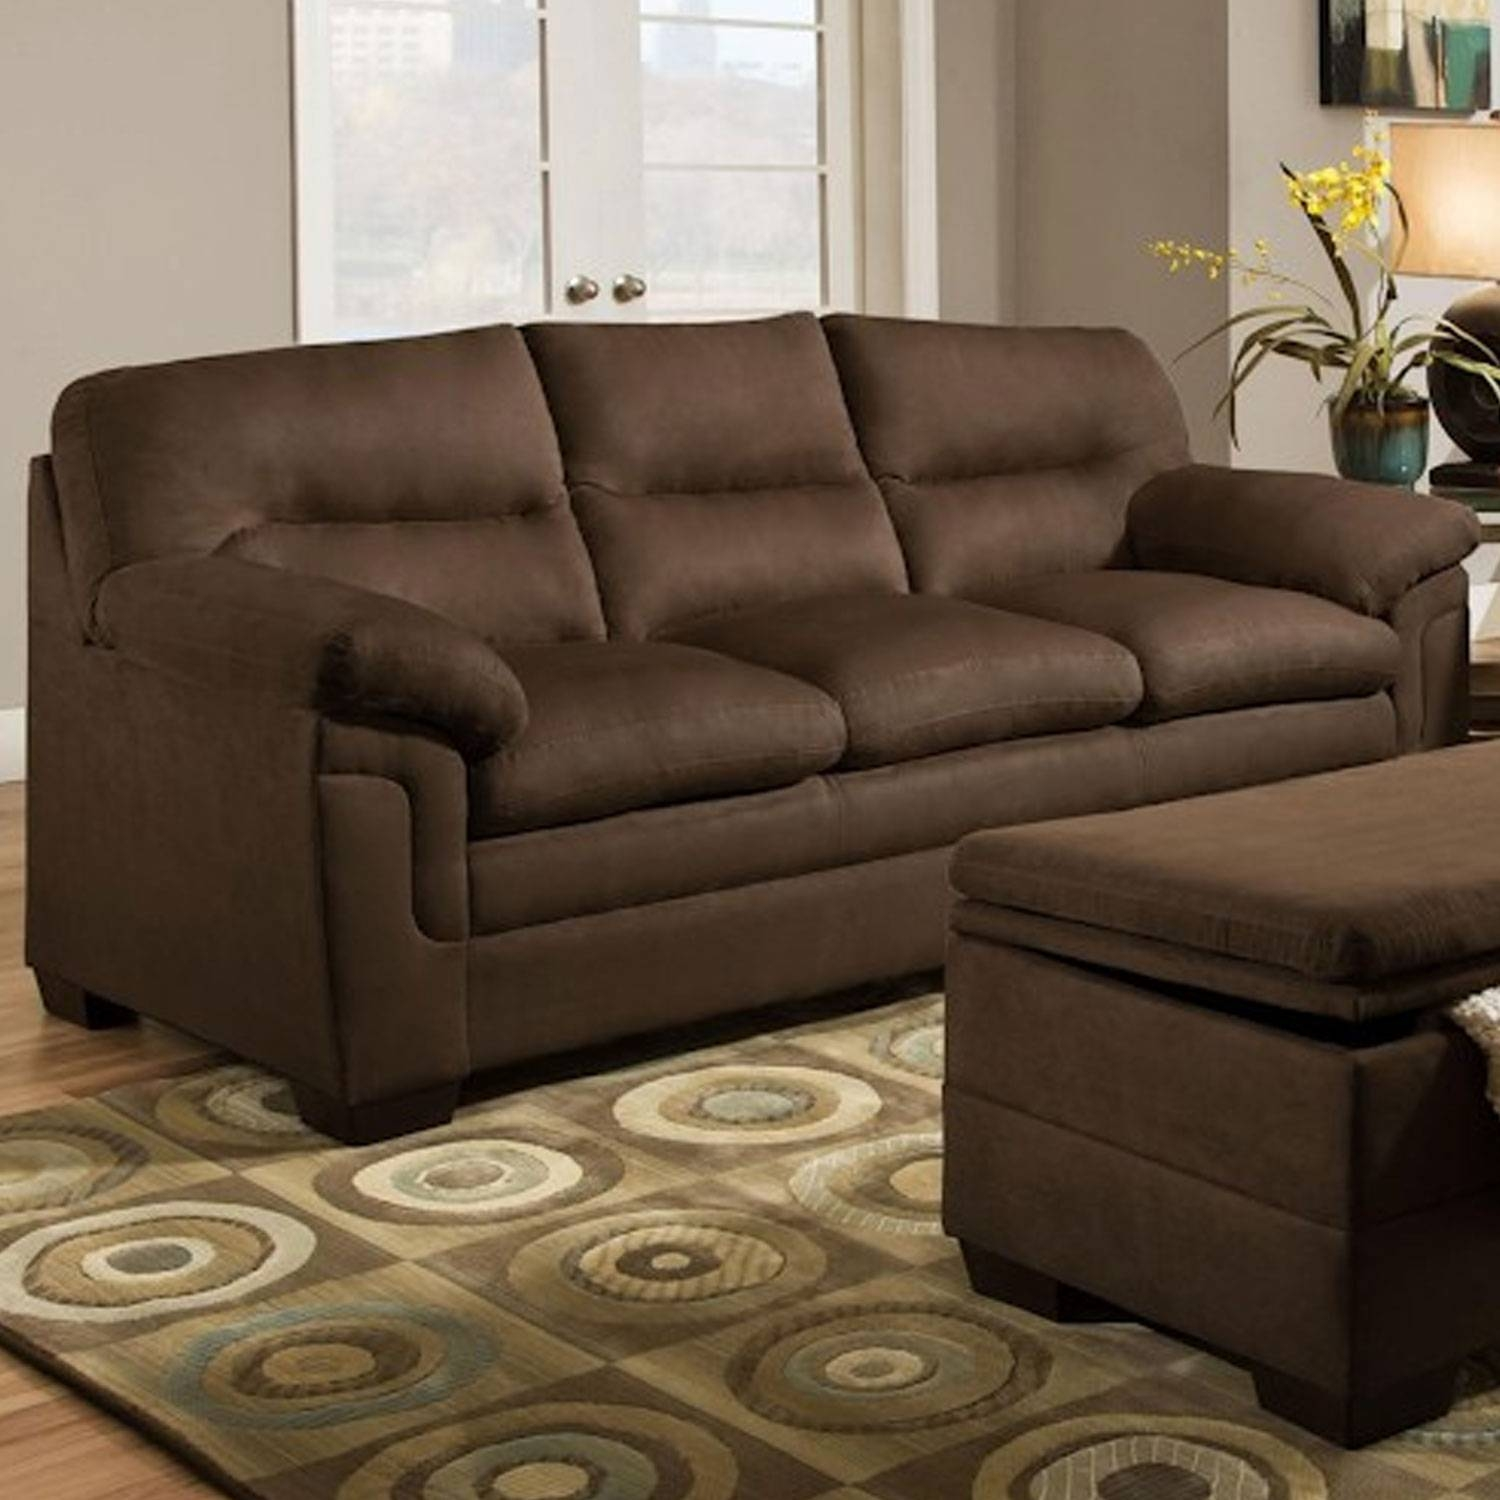 Furniture: Simmons Sofa For Comfortable Seating — Threestems Within Simmons Microfiber Sofas (View 12 of 15)